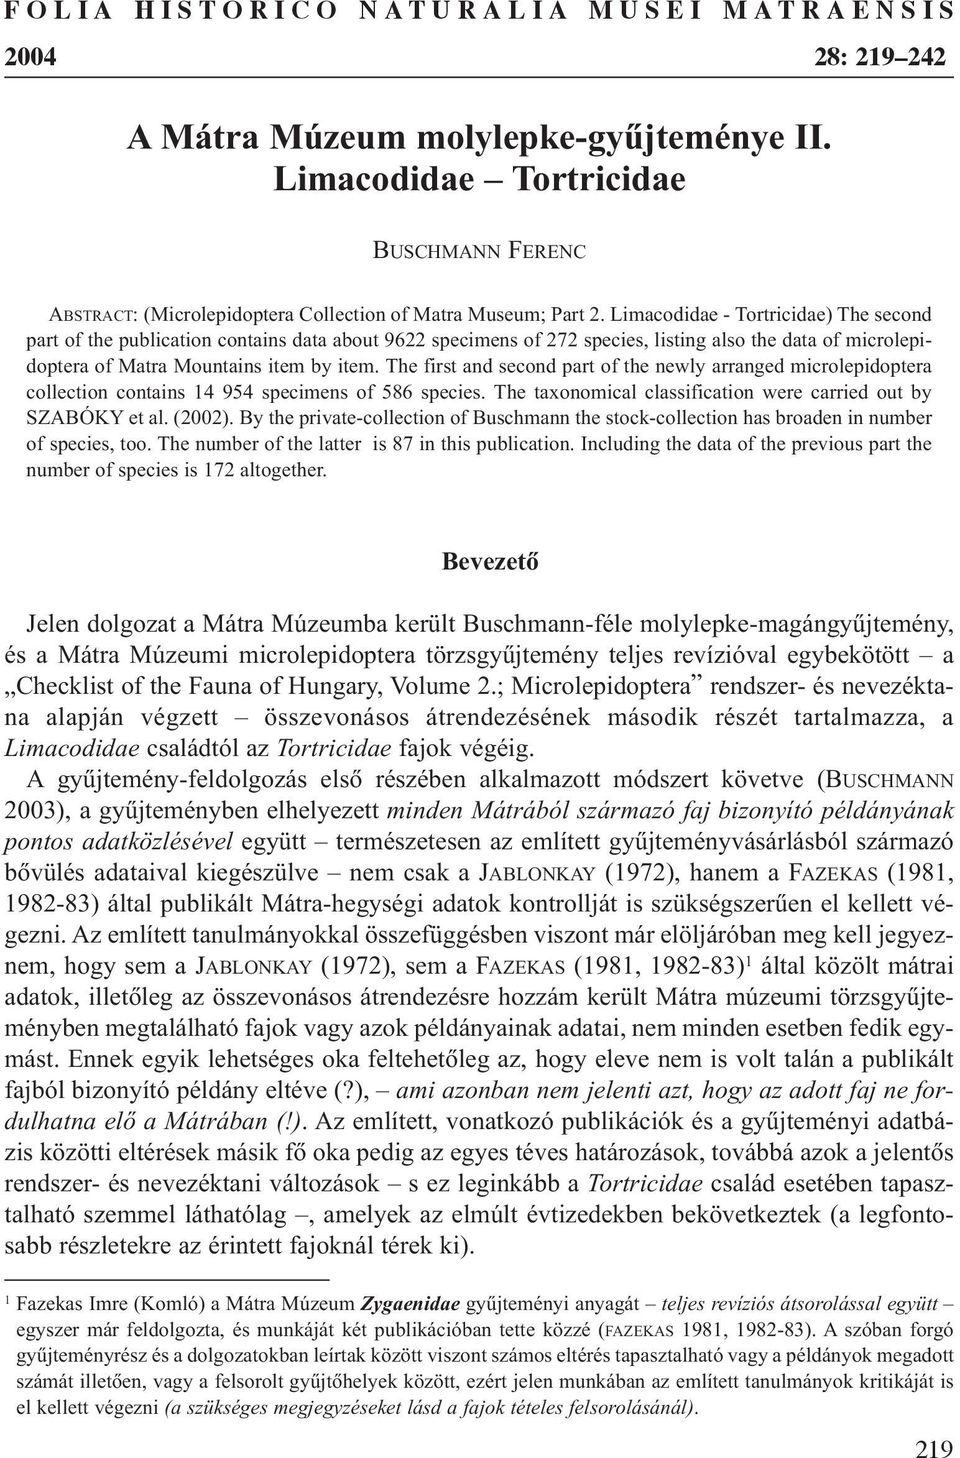 Limacodidae - Tortricidae) The second part of the publication contains data about 9622 specimens of 272 species, listing also the data of microlepidoptera of Matra Mountains item by item.